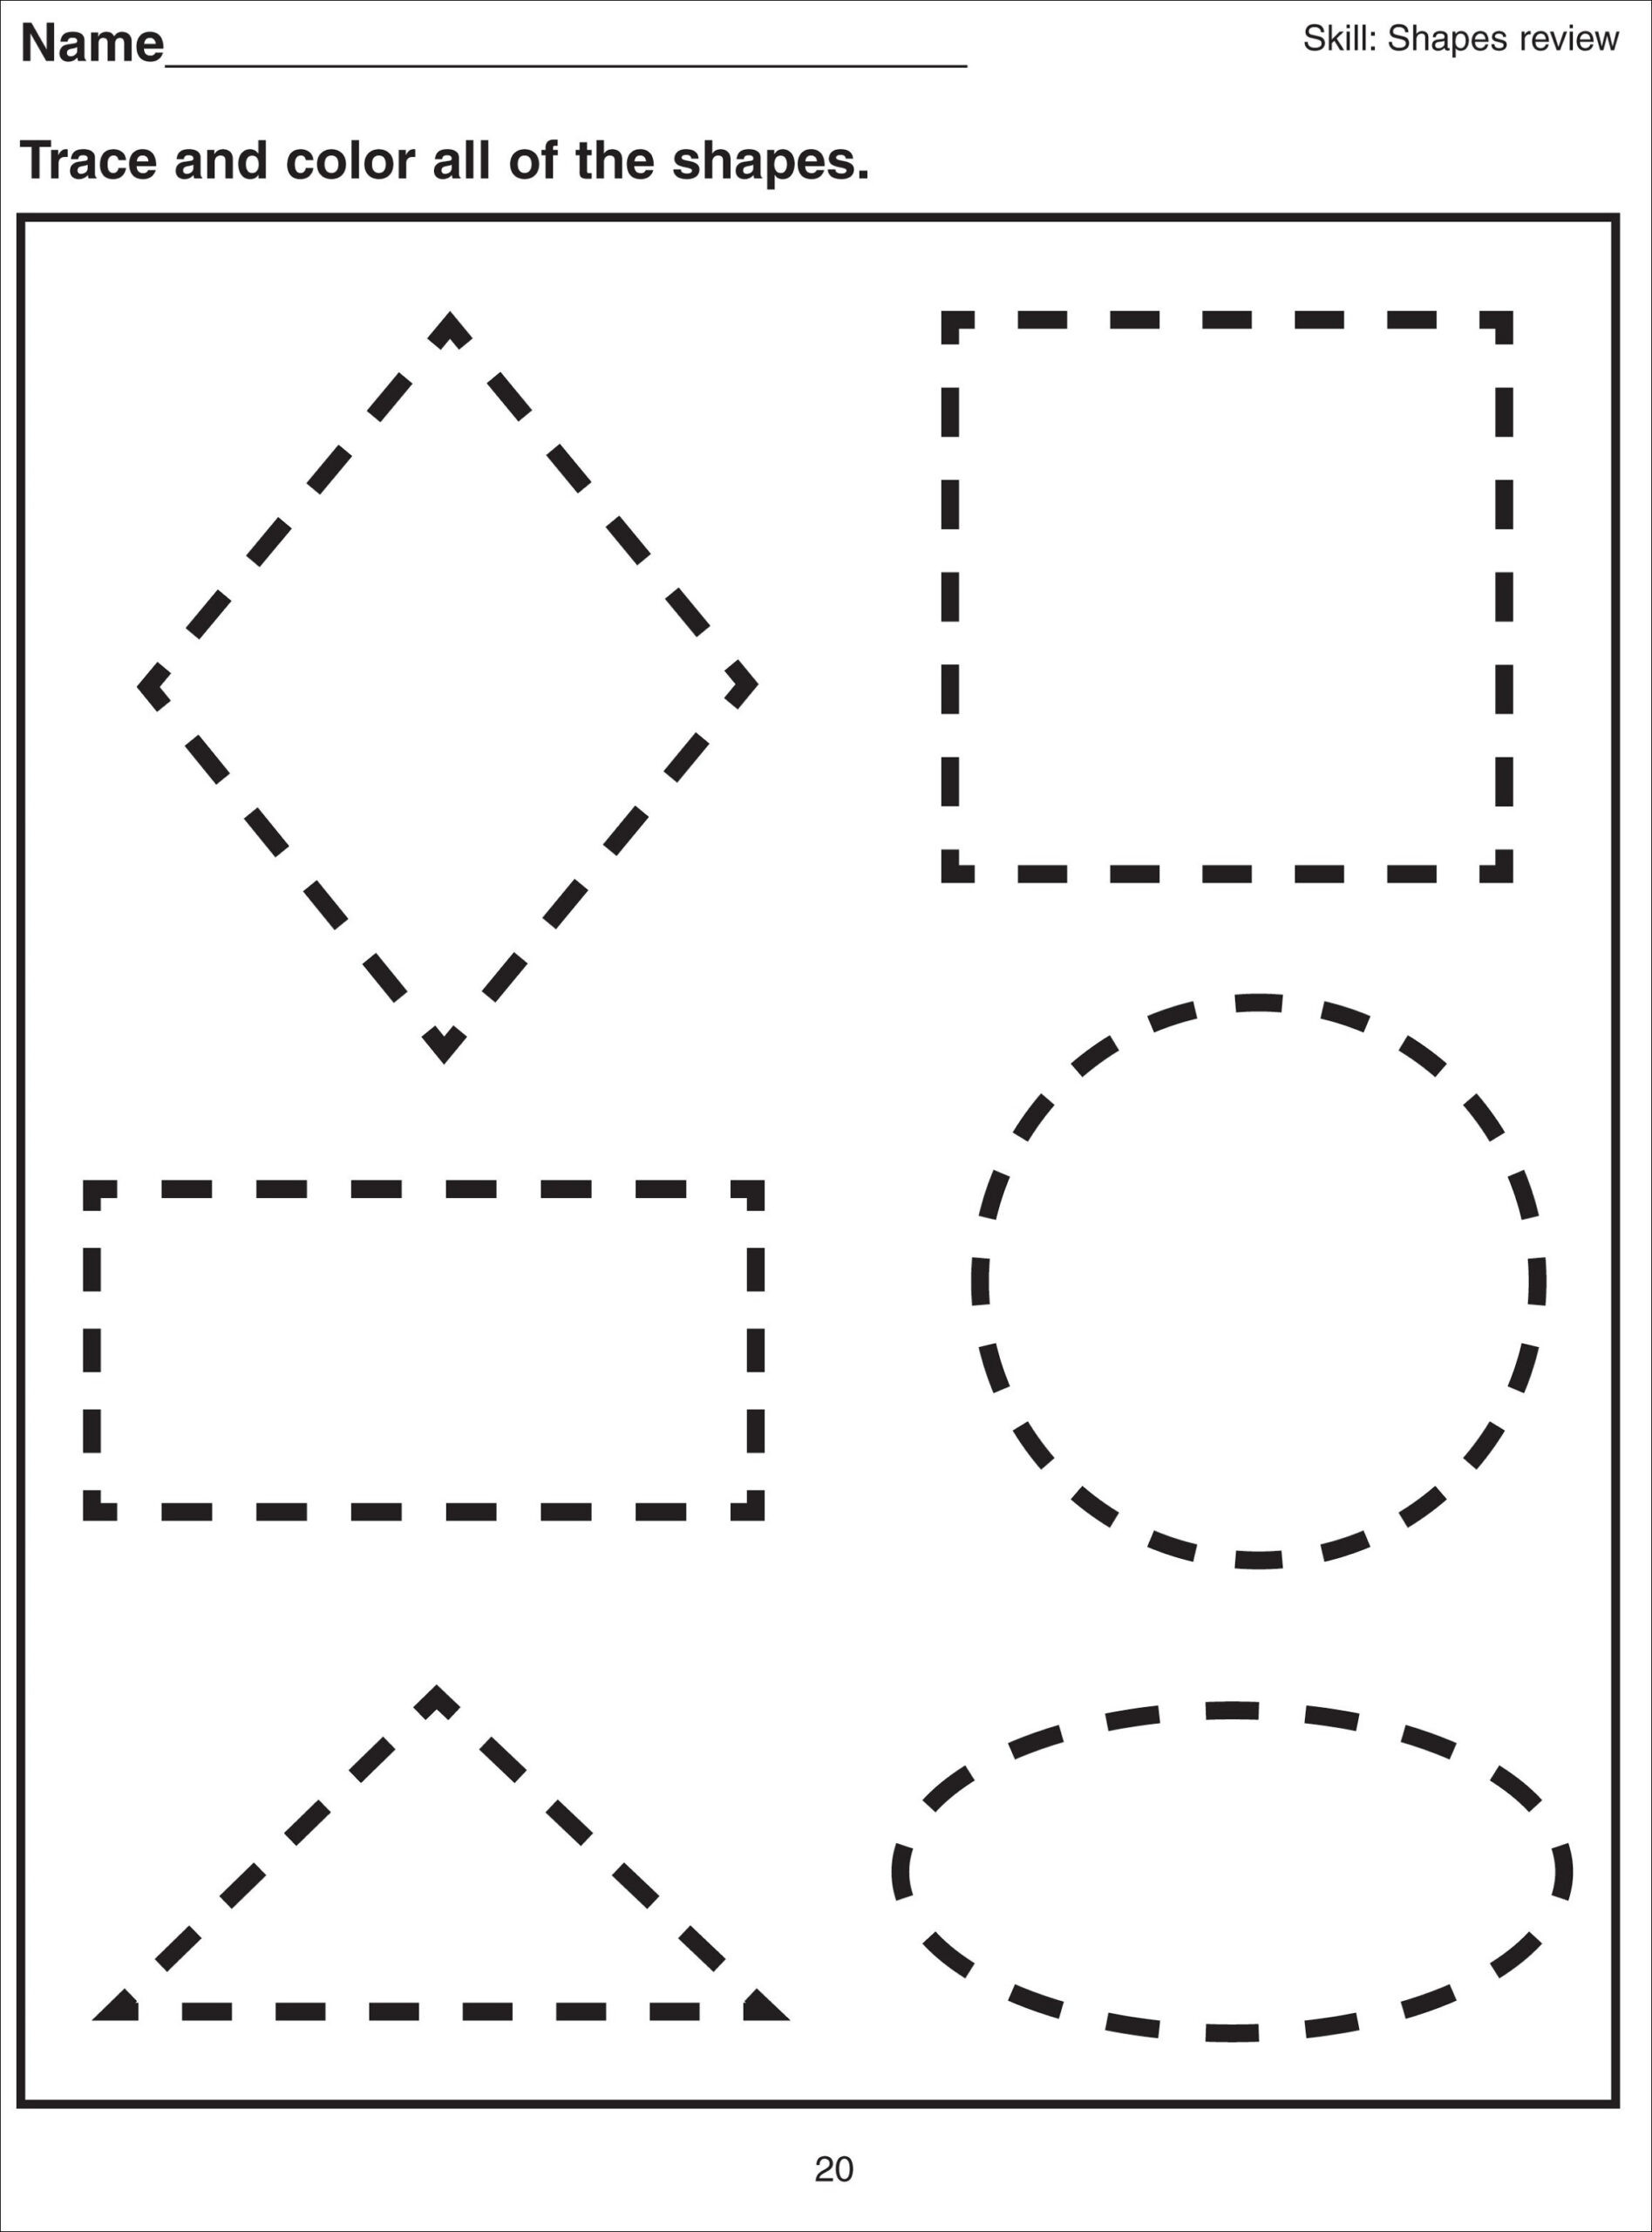 Polygon Worksheets 4th Grade Shape Tracing Worksheets for Print Free Multiplication Table